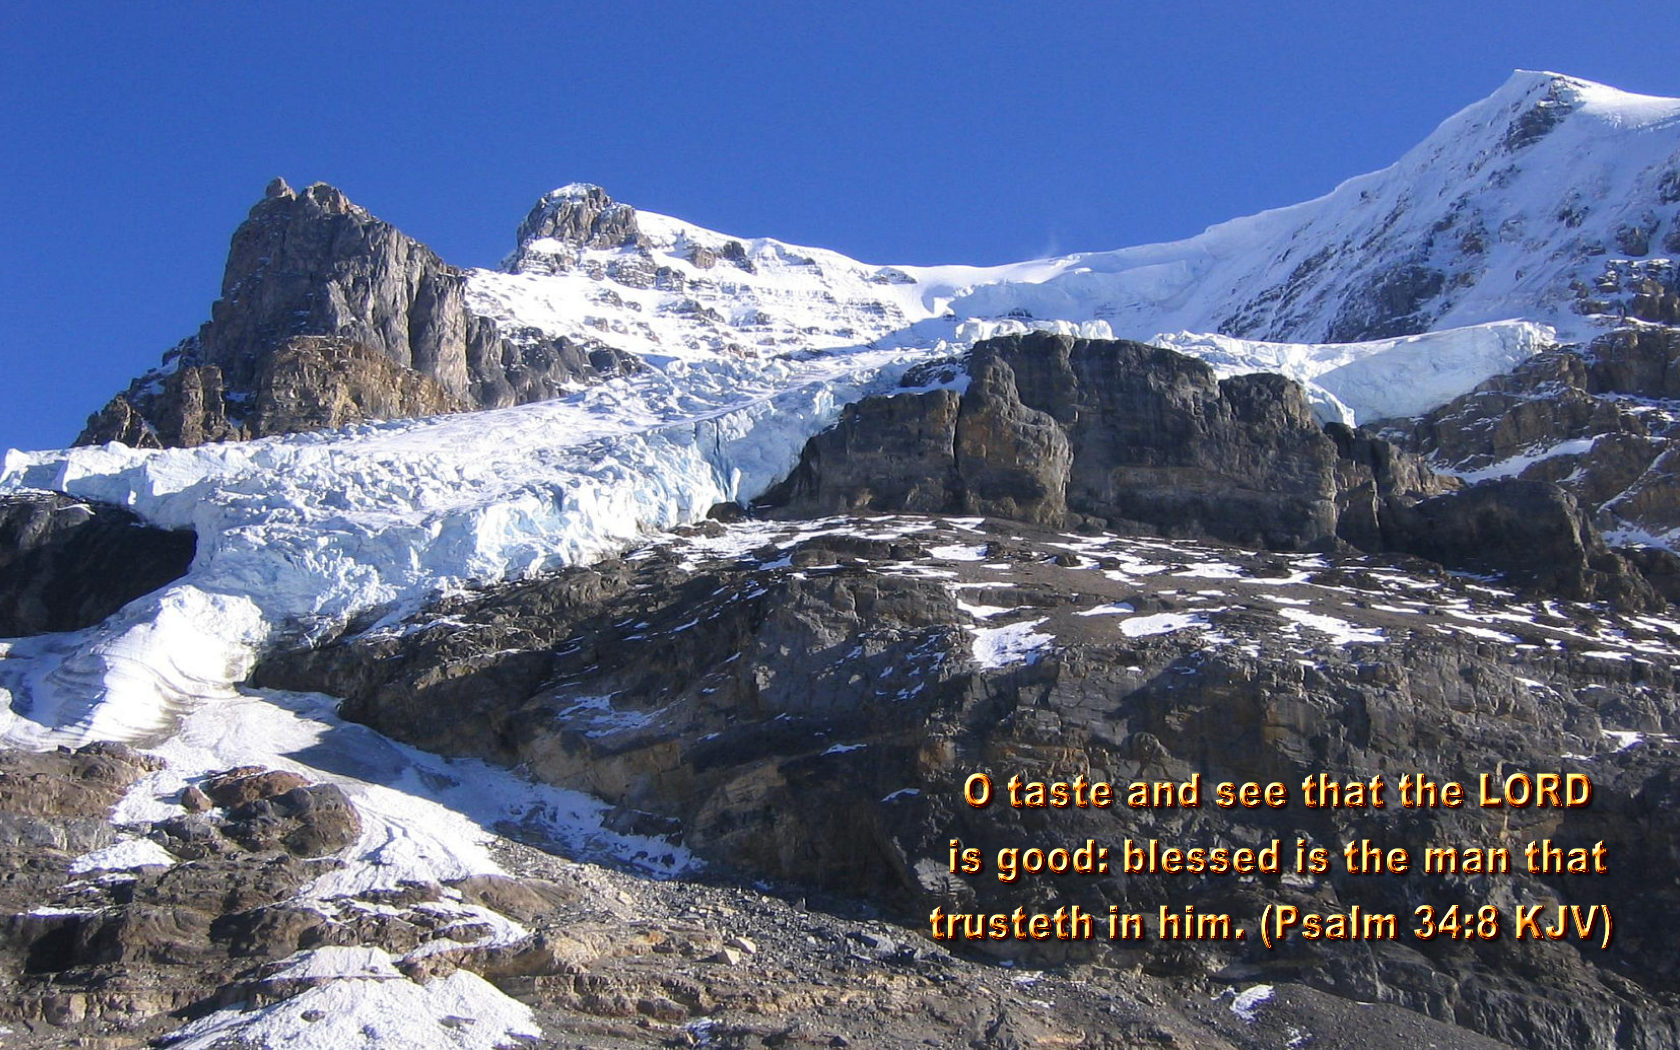 scenic wallpapers bible - photo #30